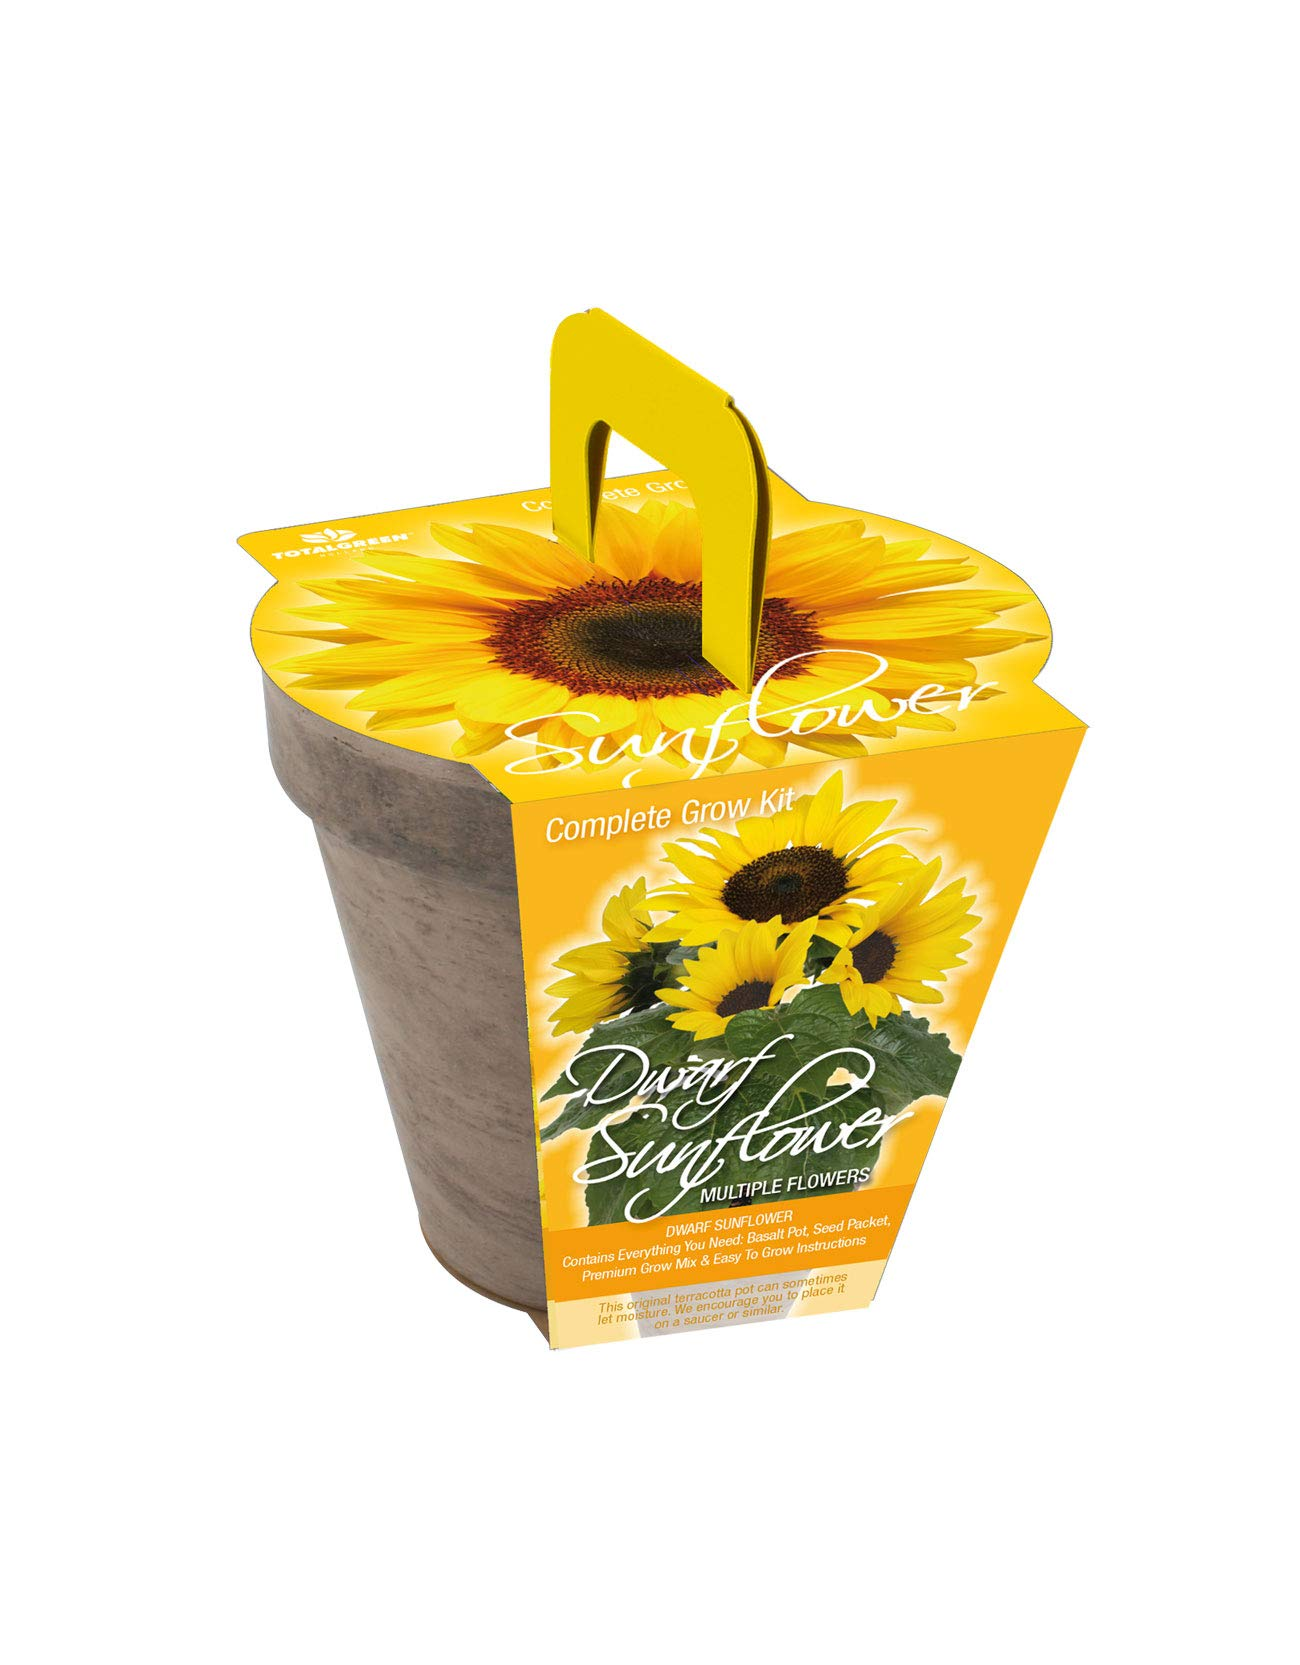 Quality Dwarf Size Sunflower Basalt Grow Kit by TotalGreen Holland   Stylish and Unique Germination Kit and Planter   Grow Your Own Mini Sunflowers from Seed Indoors with Easy Instructions